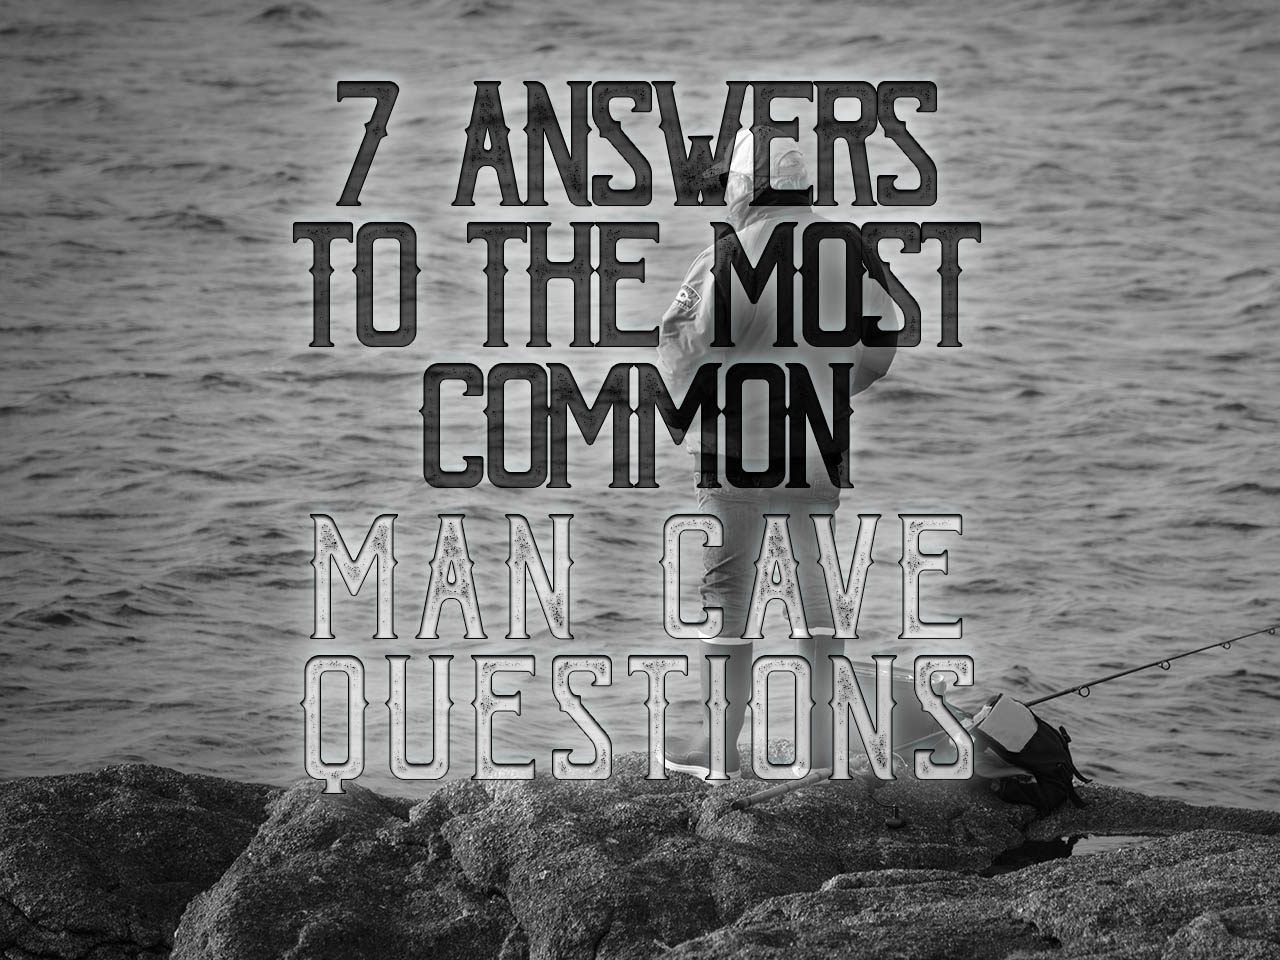 7 answers to the most common man cave questions